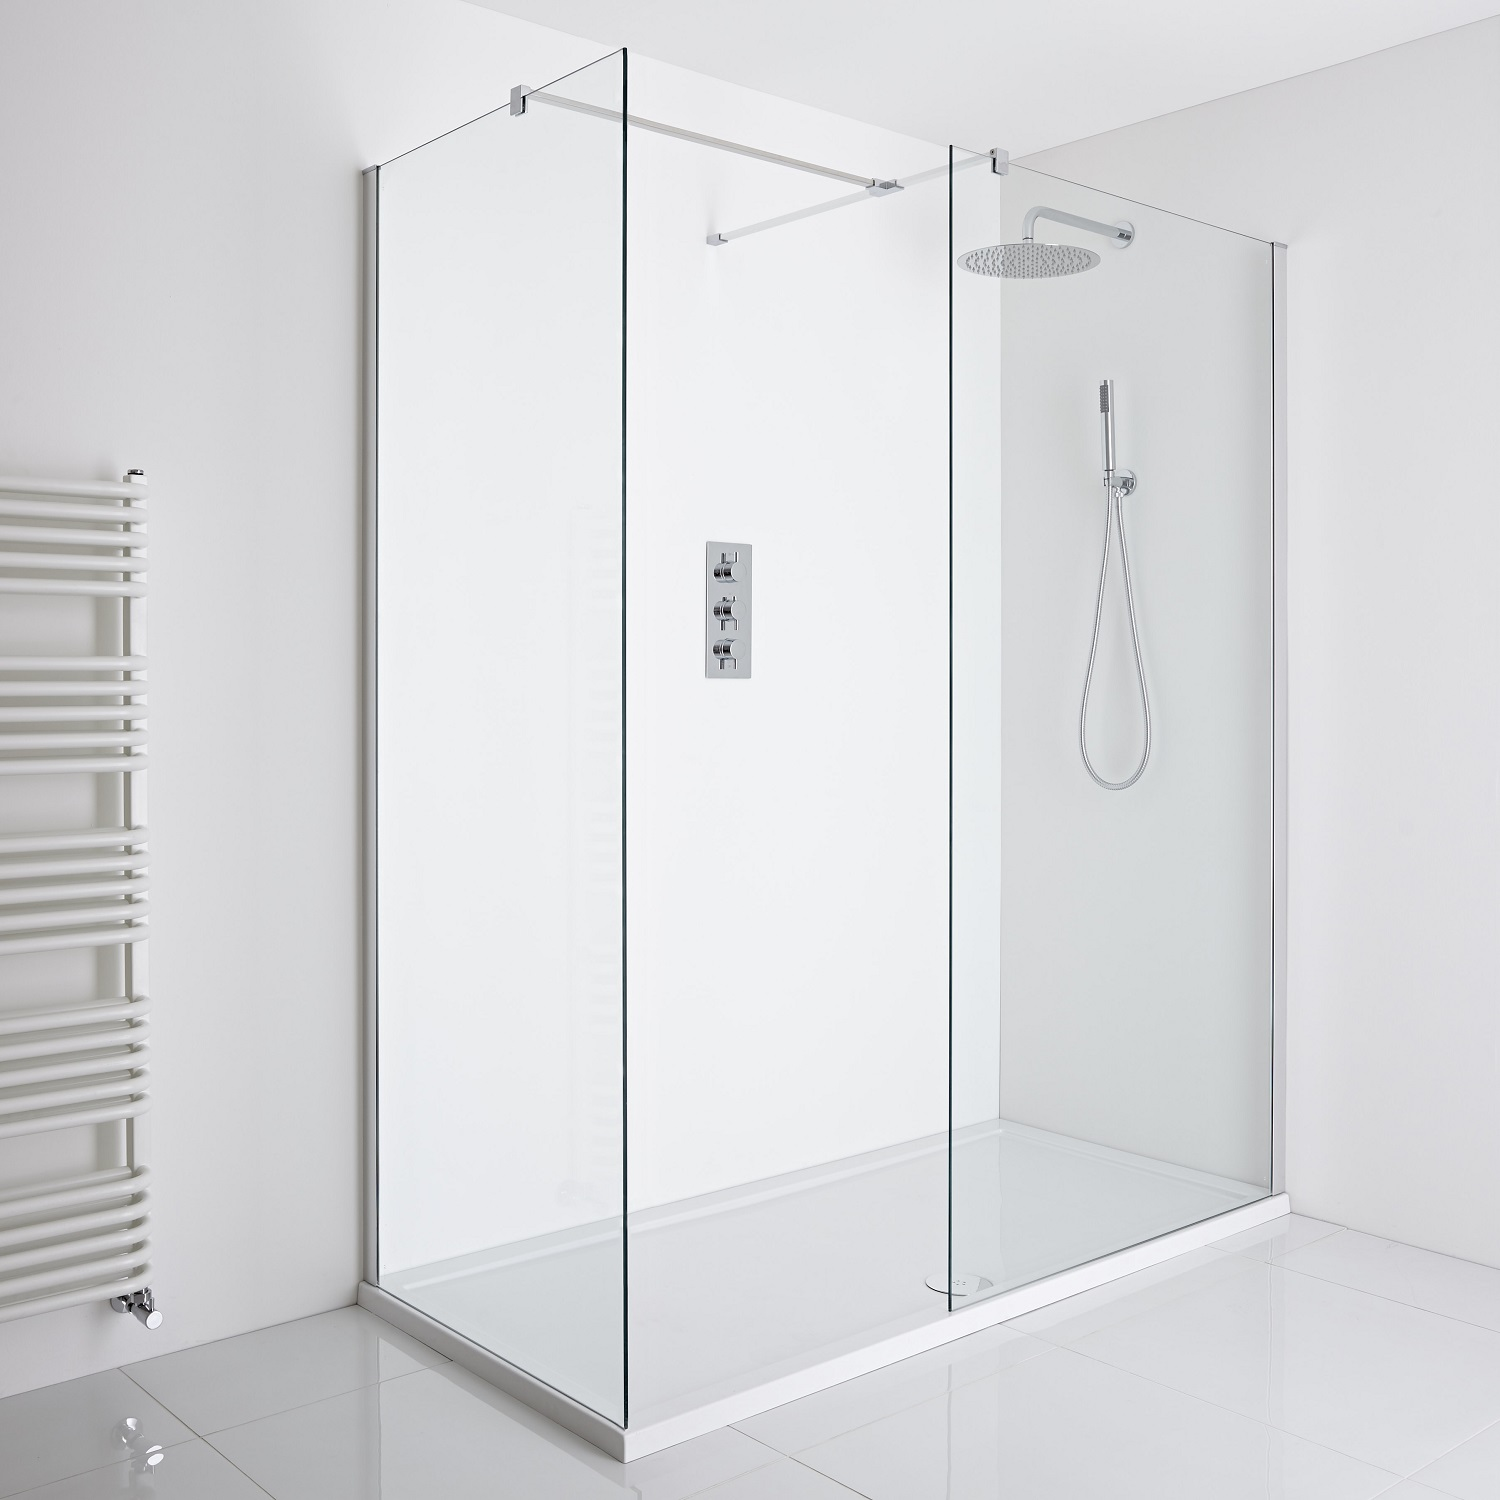 how seats a size part showerspa polished windows casement shower dish to light frameless door full mirror chrome with benches glass clean vase hinged doors rectangle one beveled of vanity soap system